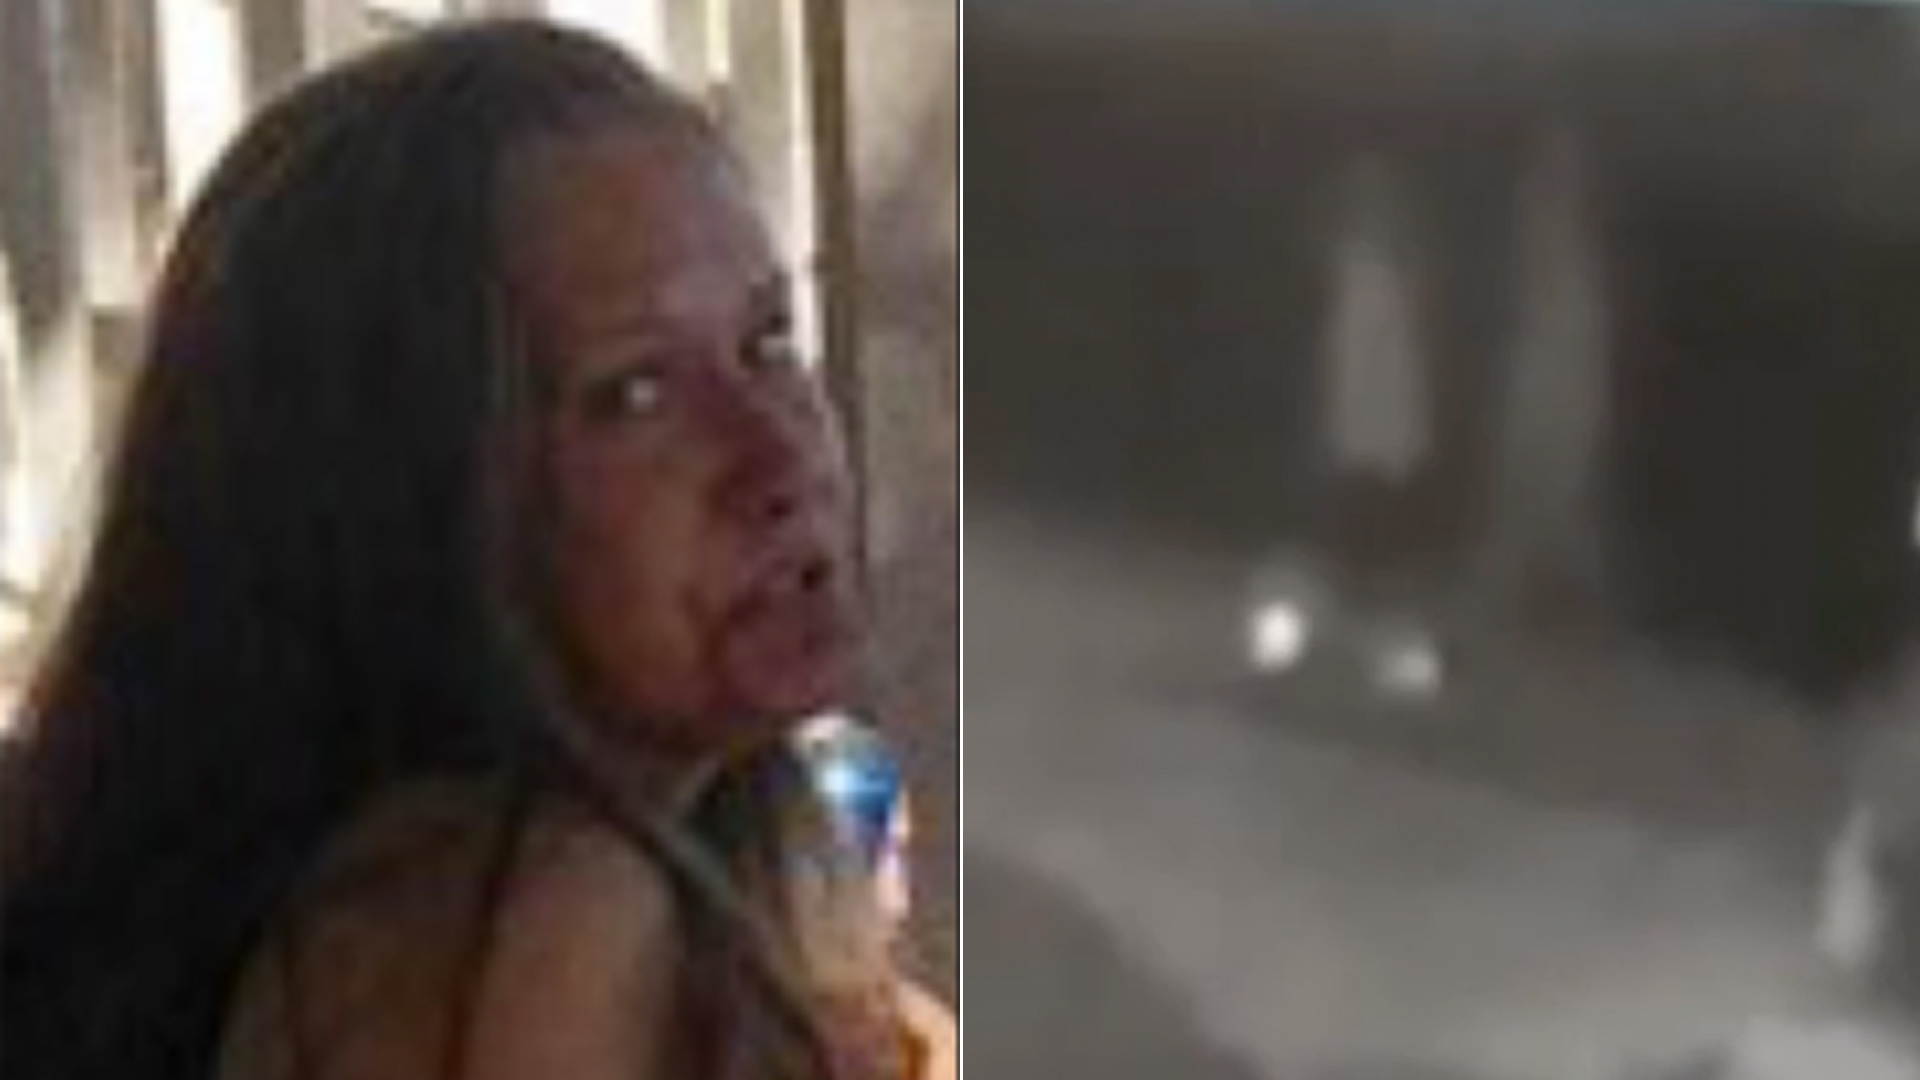 Susan Wagner, left, appears in a photo released by Riverside police on Nov. 27, 2019. On the right, a still from a video shows two people police are seeking in connection with Wagner's death.